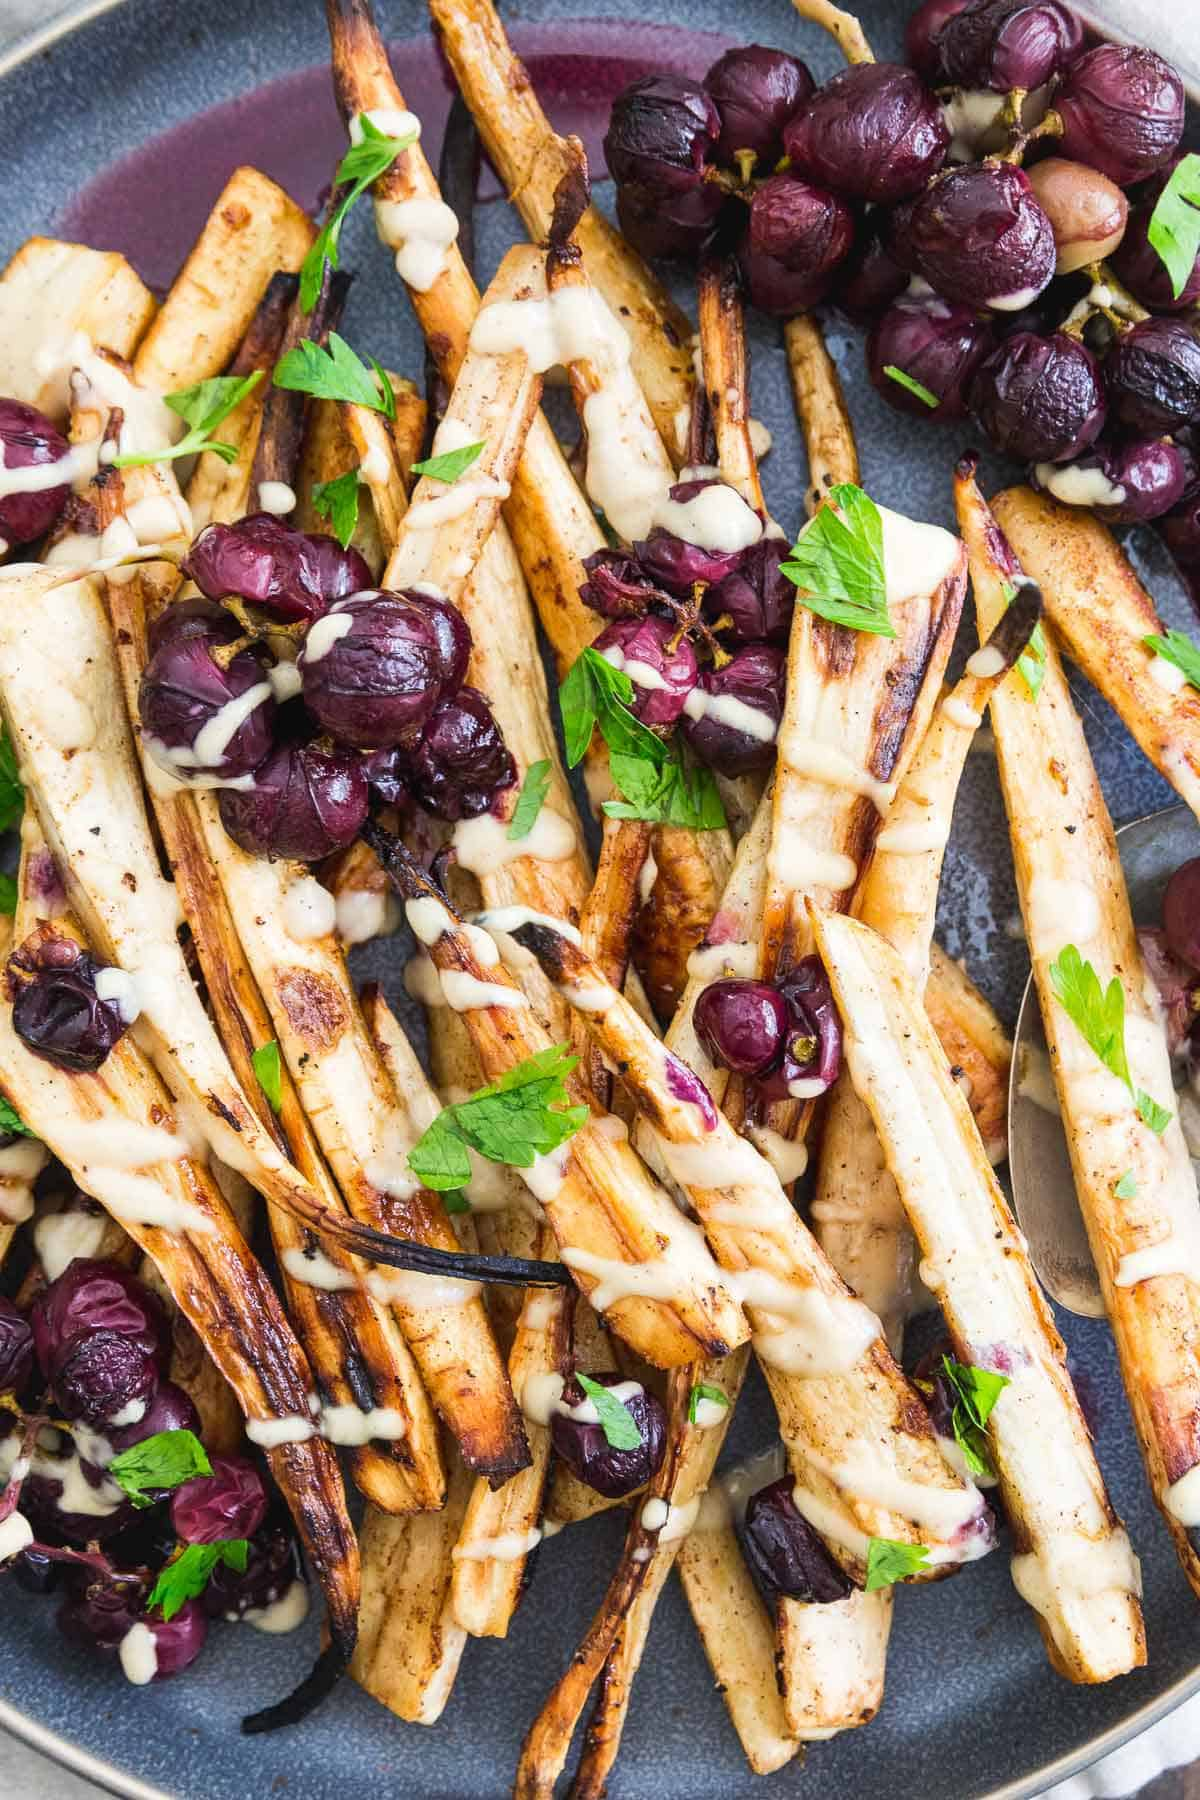 Cinnamon sugar roasted parsnips with concord grapes and a sweet maple hummus drizzle make a delicious and impressive holiday side dish.